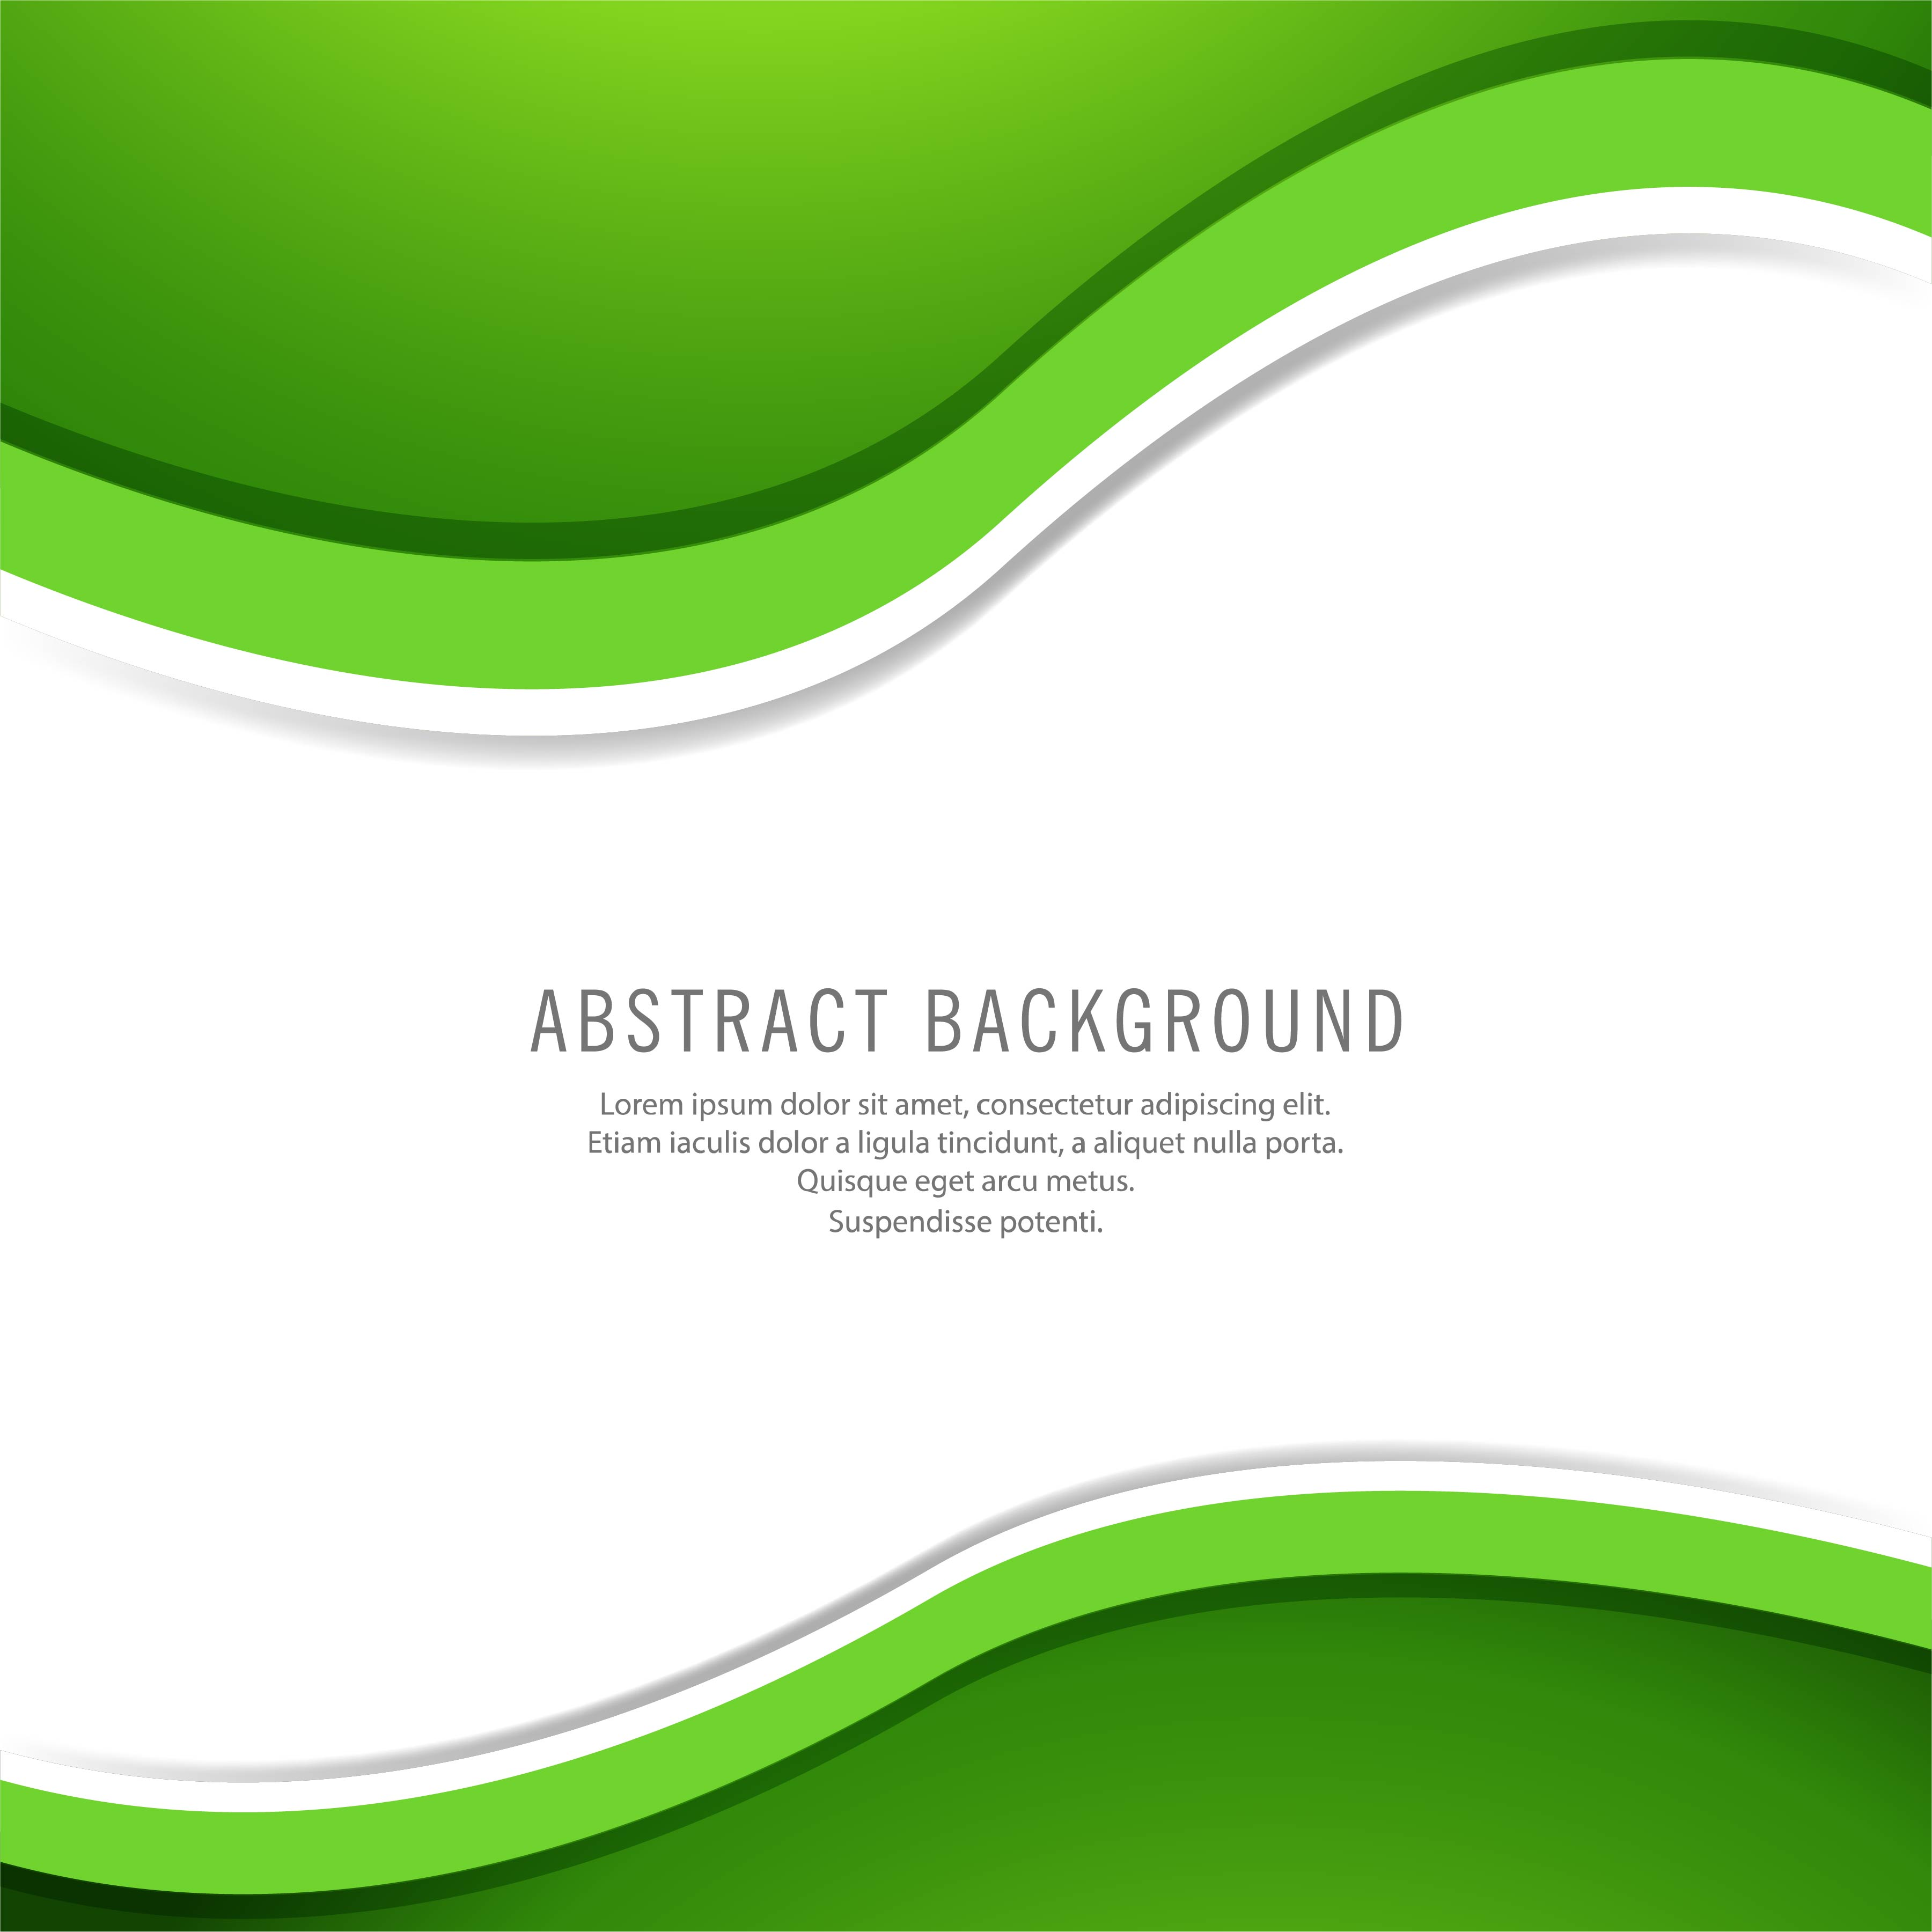 Abstract Stylish Green Wave Background